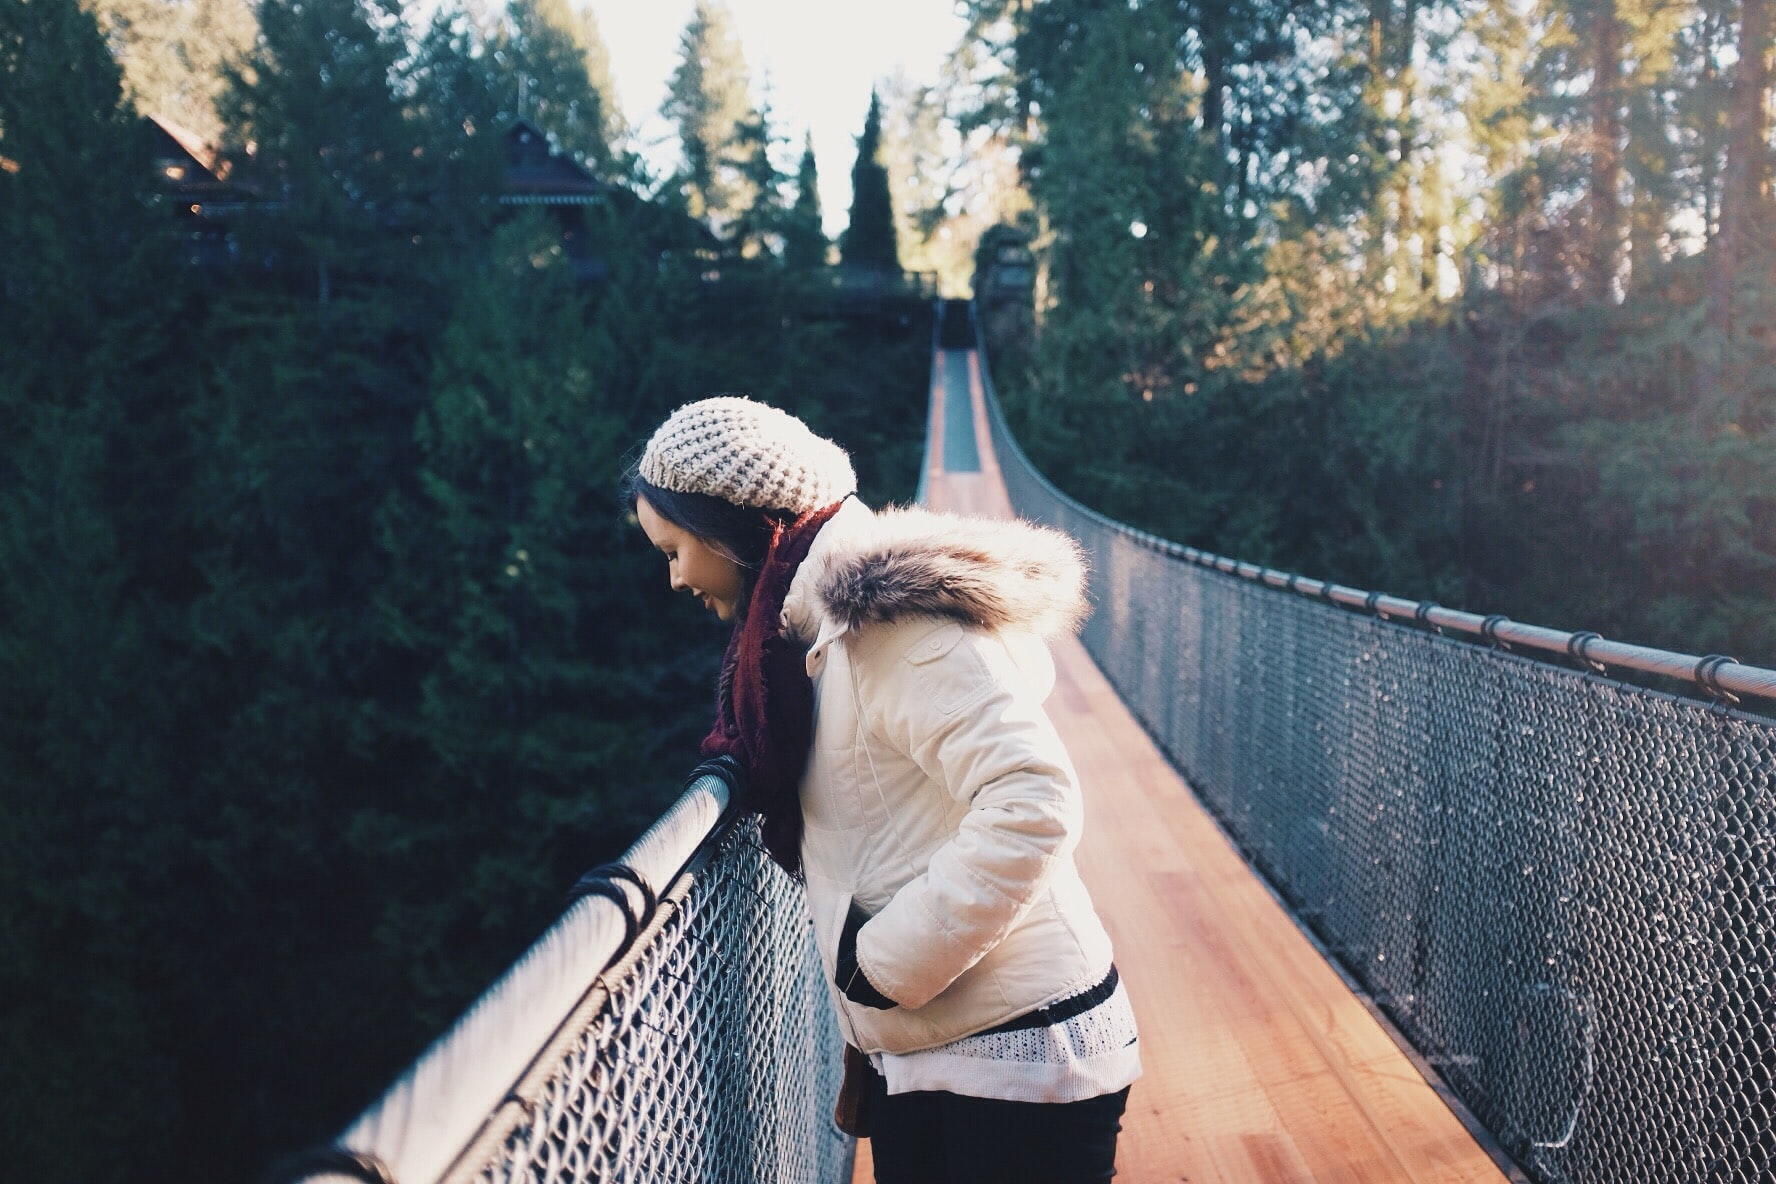 A woman in a knit cap looks over the chain-link fence on the Capilano Suspension Bridge